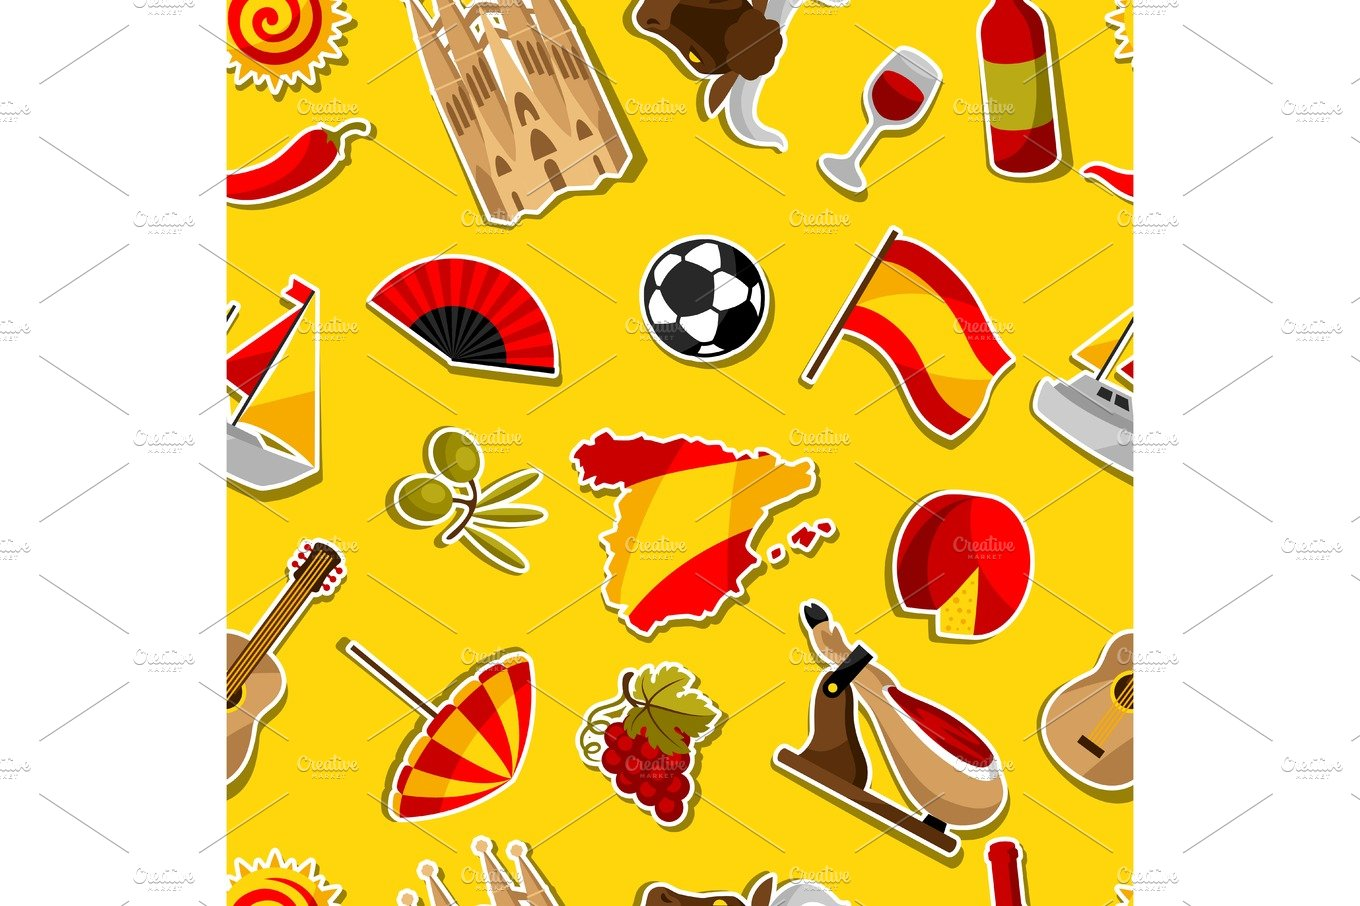 Castanets Photos, Graphics, Fonts, Themes, Templates ...